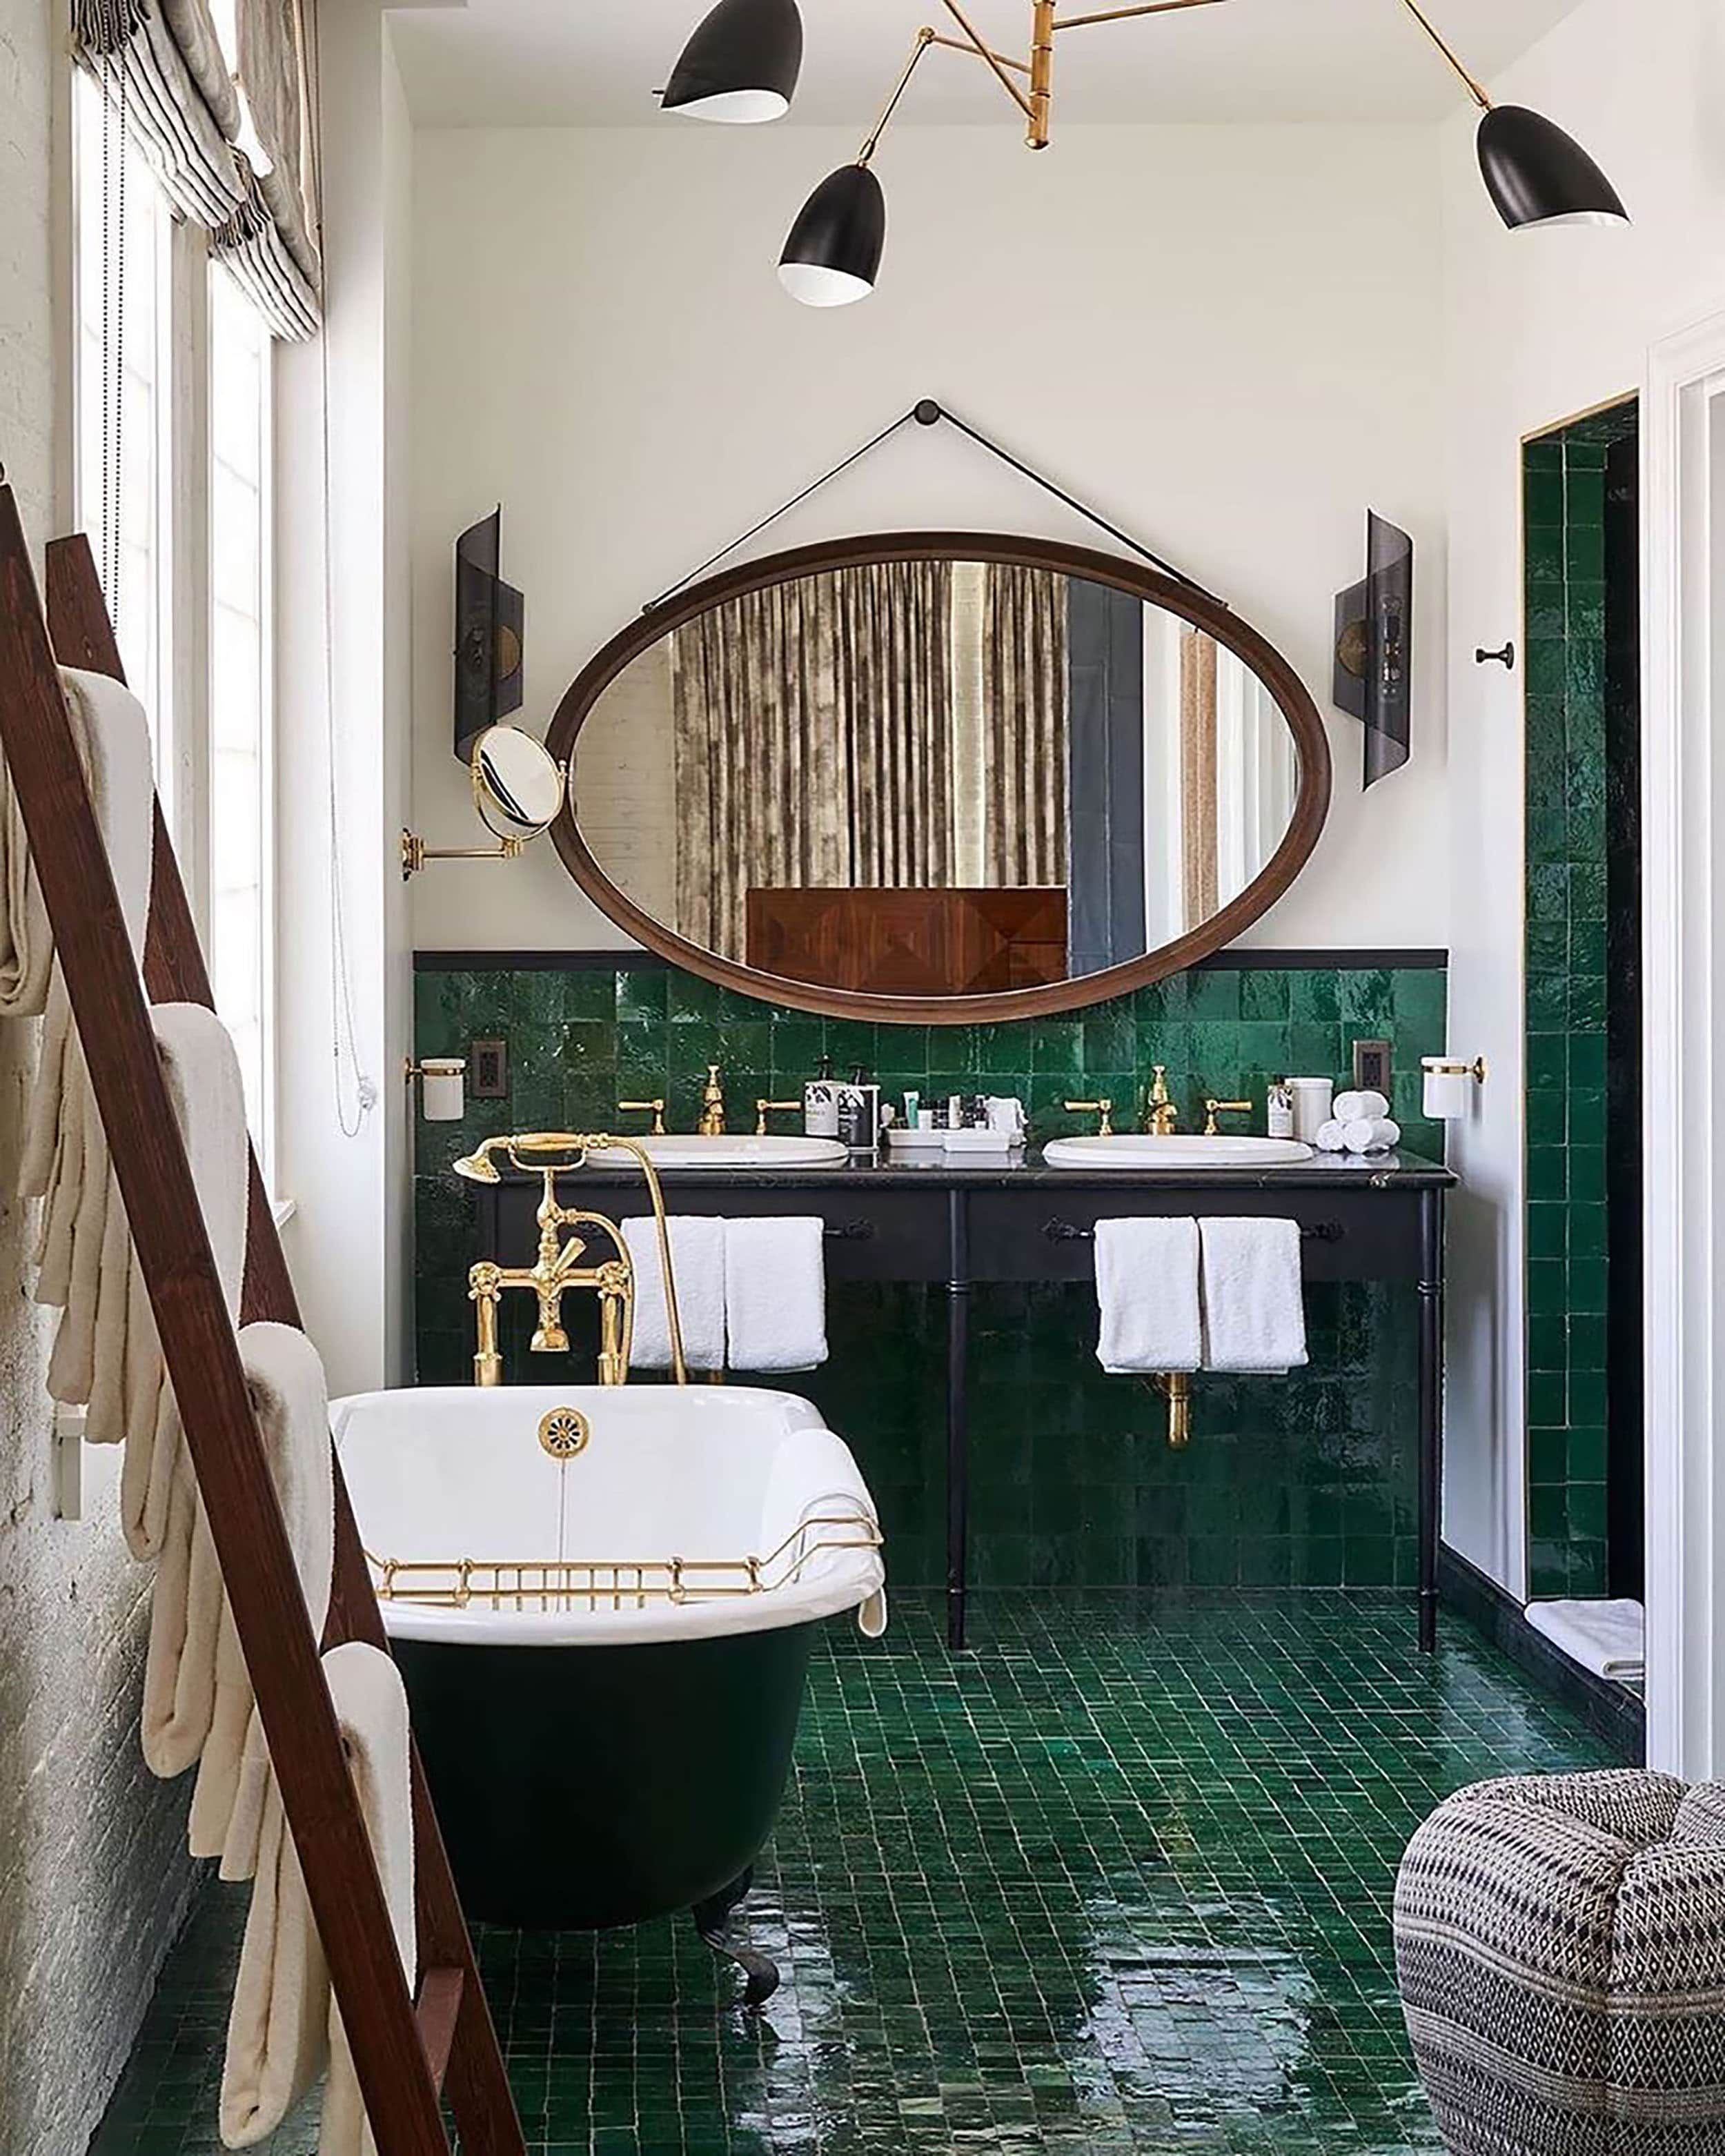 The 9 Best 2020 Bathroom Trends We Wish We Had Right Now - Emily Henderson #bathroomremodel #modernbathroom #interiors